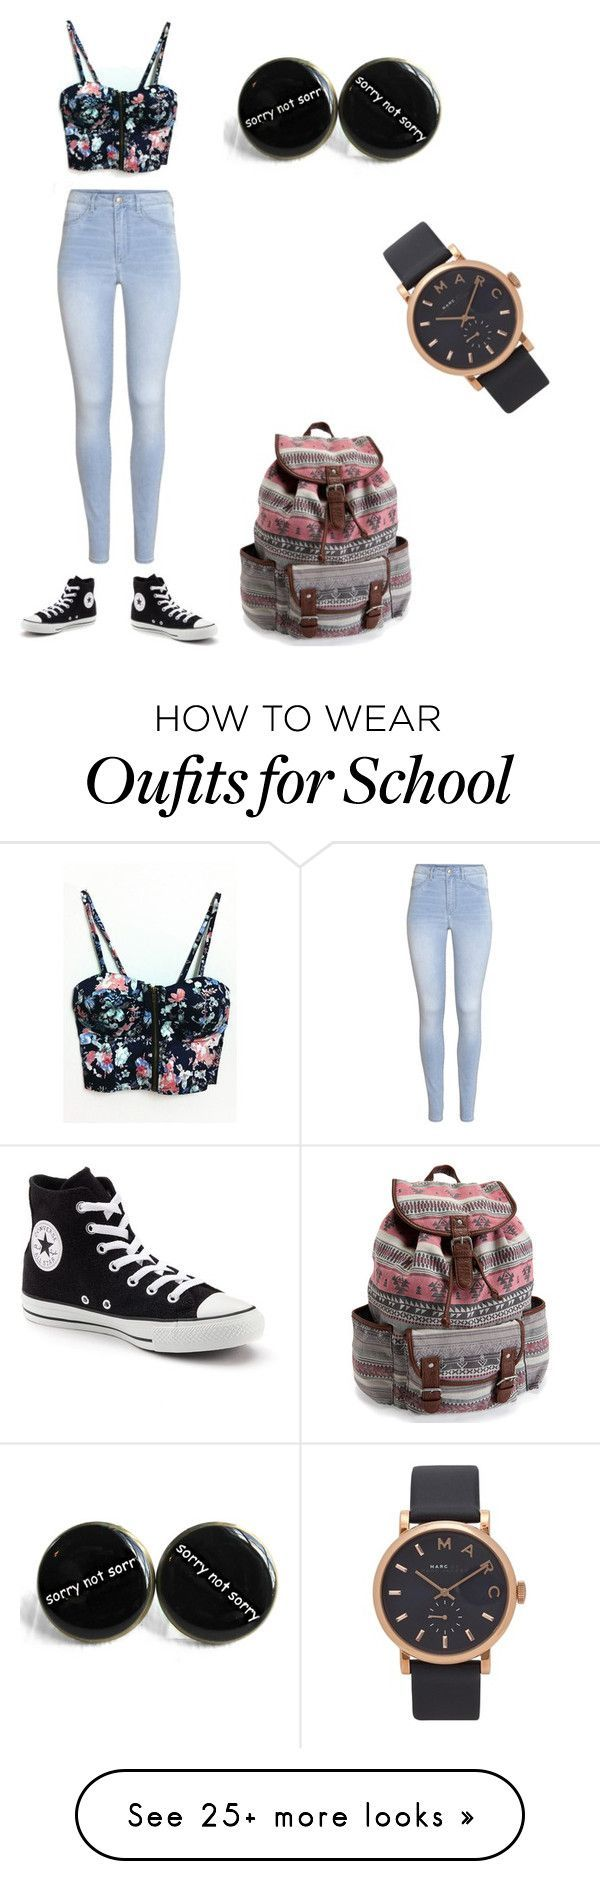 """School"" by laney2716 on Polyvore featuring WithChic, H&M, Converse, Marc Jacobs and Aéropostale"